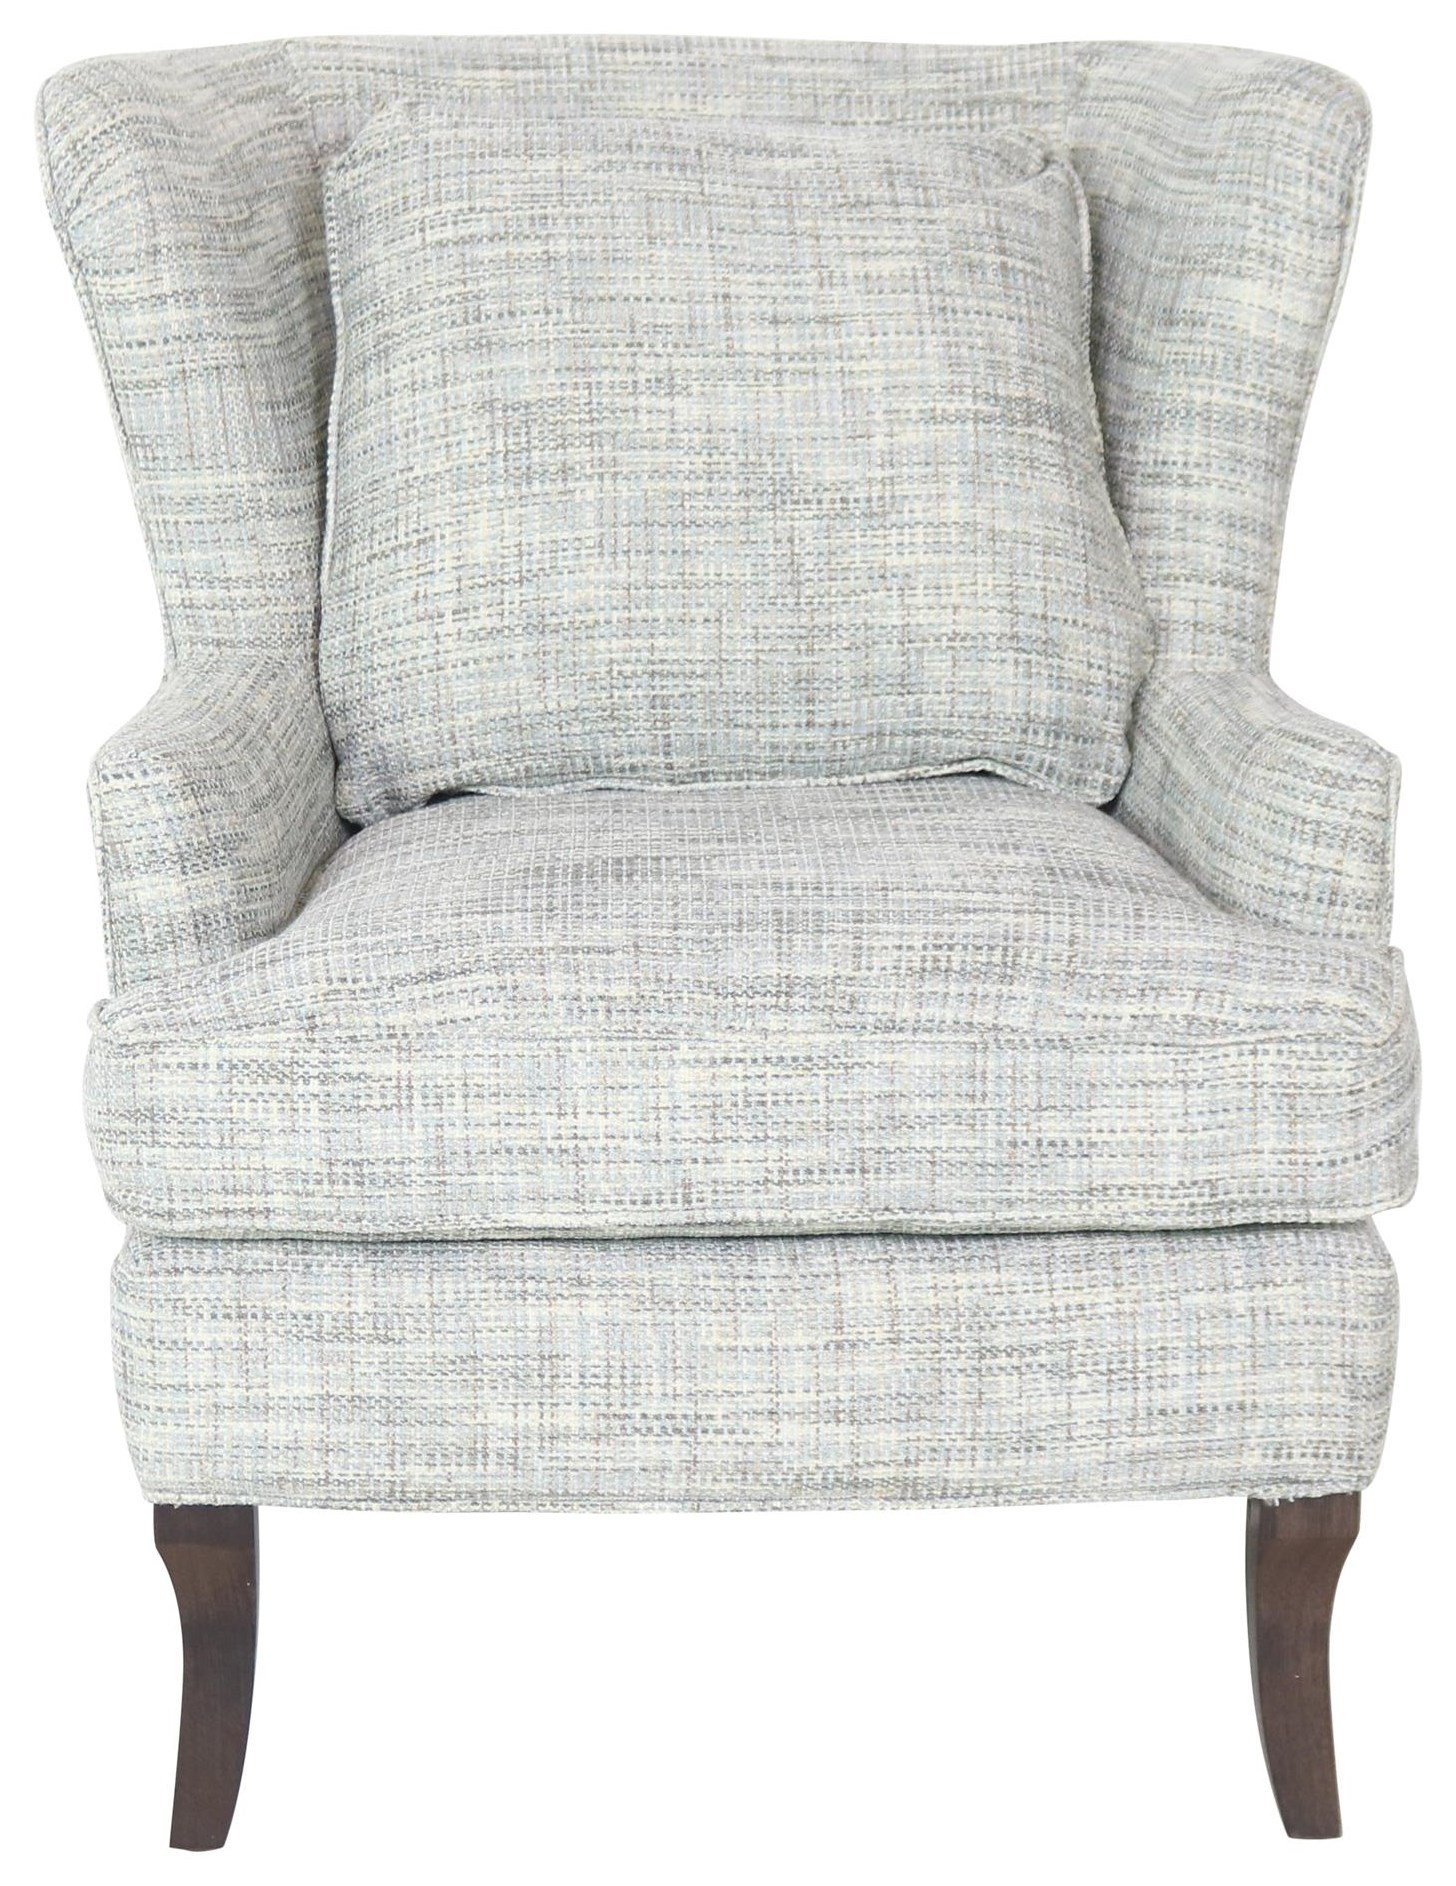 0850 Chair by Cozi Life Upholstery at Sprintz Furniture